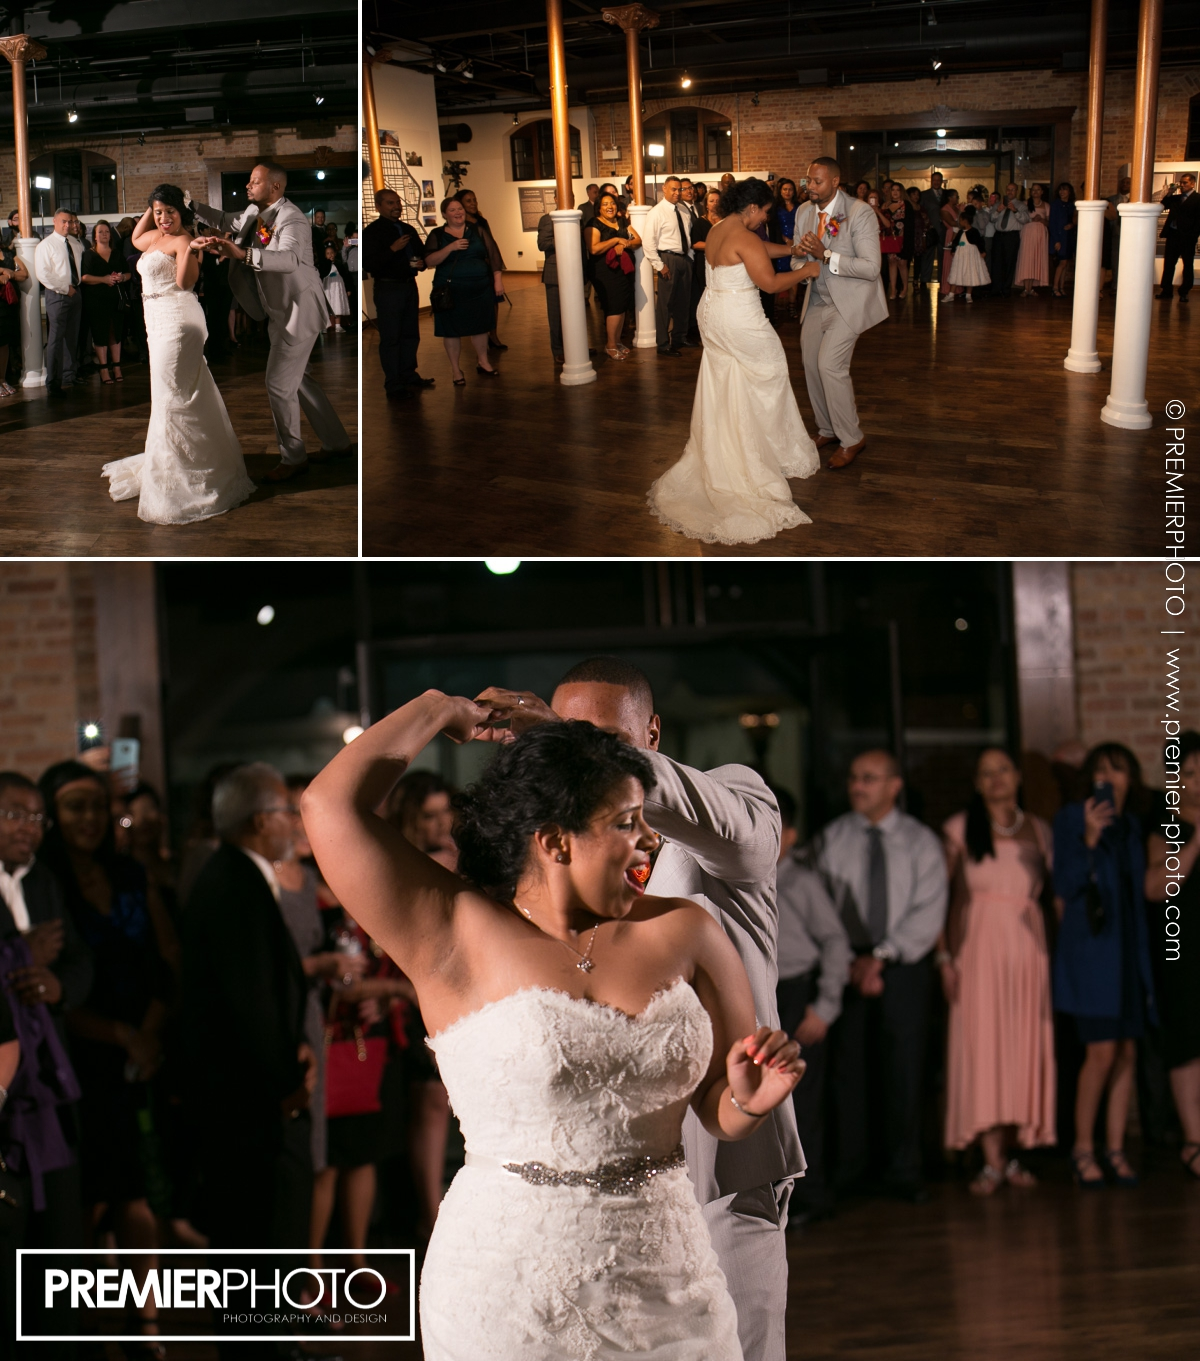 First dance as husbandt and wife at National Museum of Puerto Rican Arts & Culture Chicago